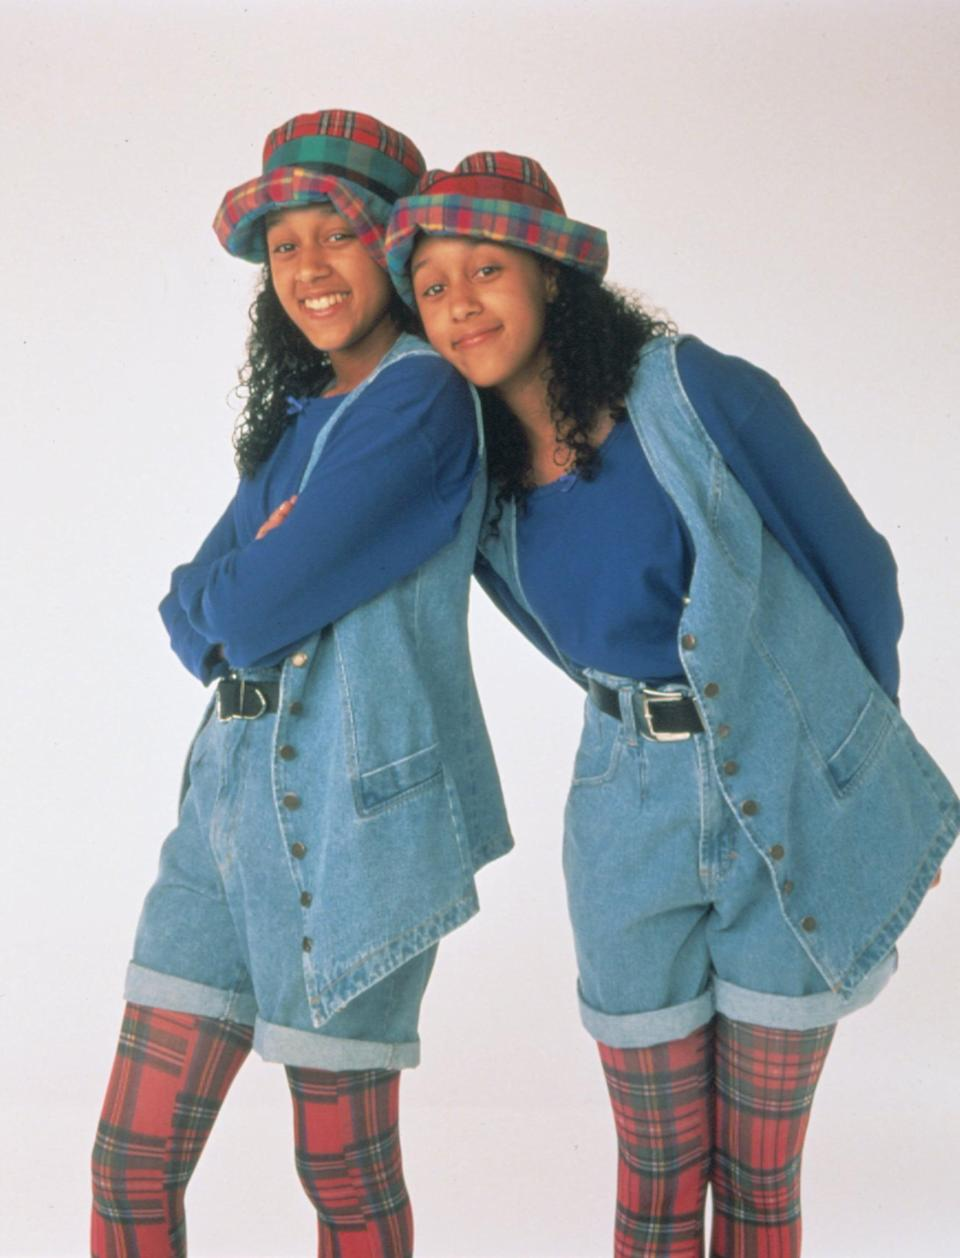 <ul> <li><strong>What to wear: </strong>Wow, wow, wow - Tia and Tamera were the epitome of '90s fashion in their denim shorts, denim vests, plaid tights, and plaid hats. </li> </ul> <ul> <li><strong>How to act: </strong>Grab your BFF and act as total opposites! Tia is academic and wise beyond her years while Tamera is impulsive and outgoing - which one will you be? </li> </ul>